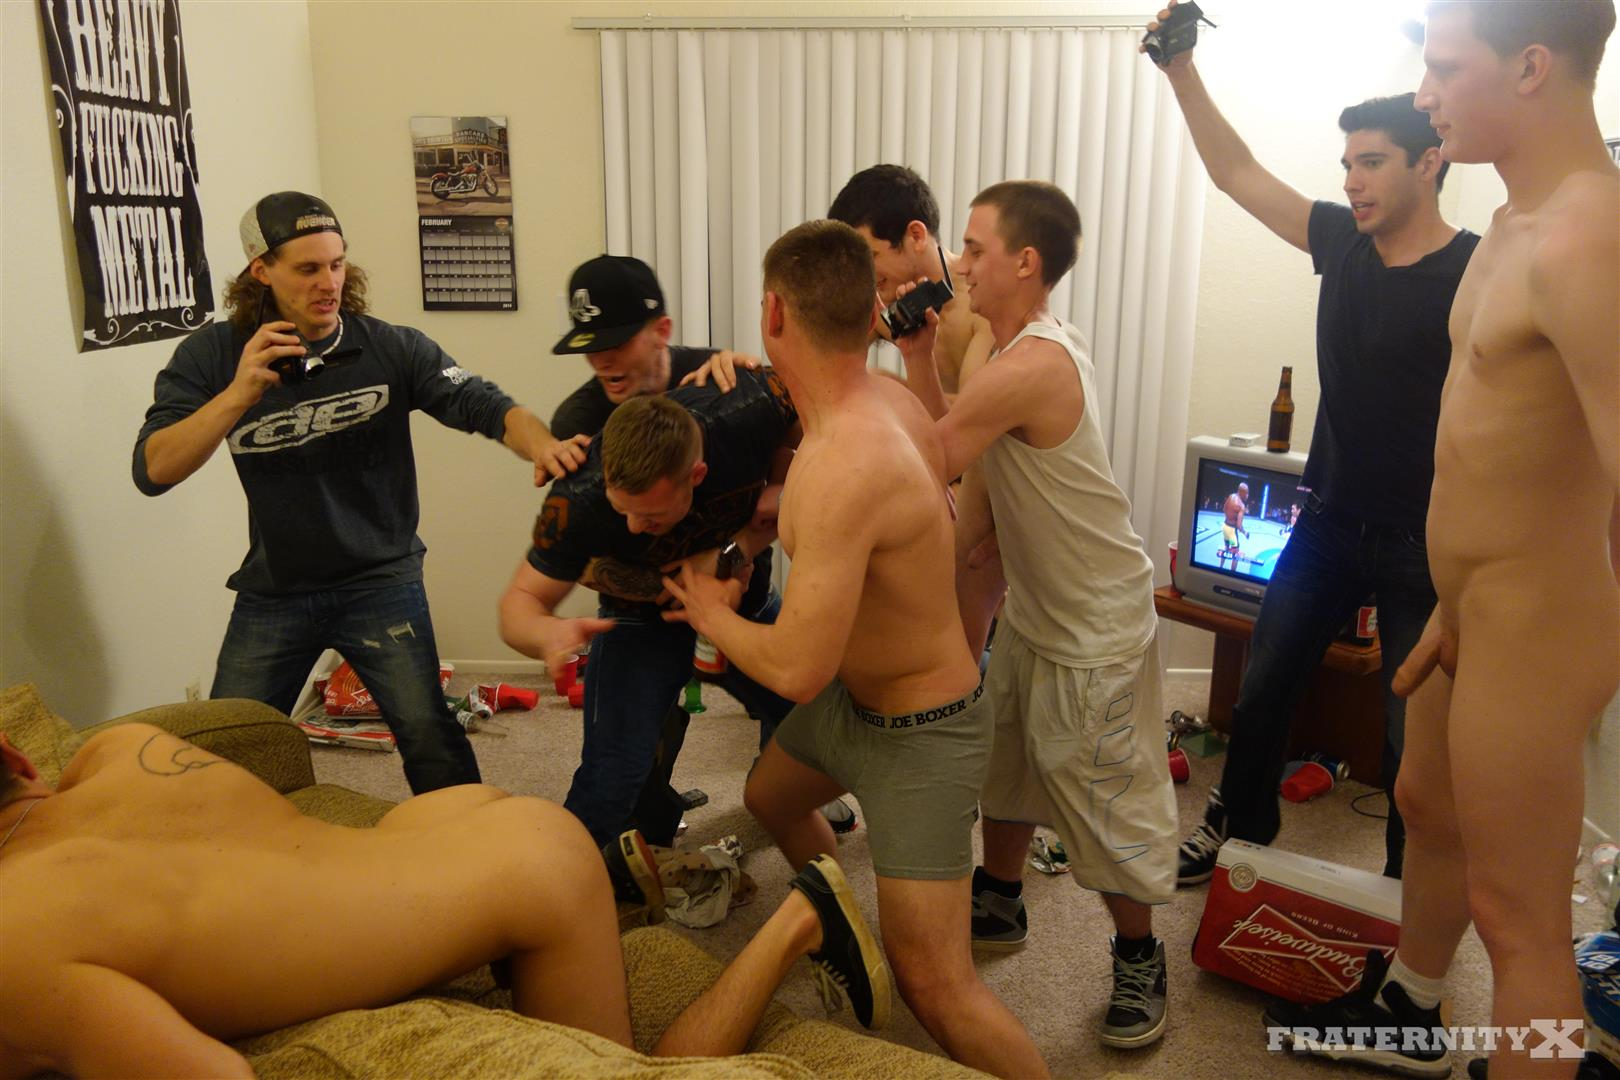 Fraternity X Brad Pledge Takes 5 Bareback Cocks Up The Ass Amateur Gay Porn 48 Fraternity Pledge Takes 5 Bareback Cocks Up The Ass